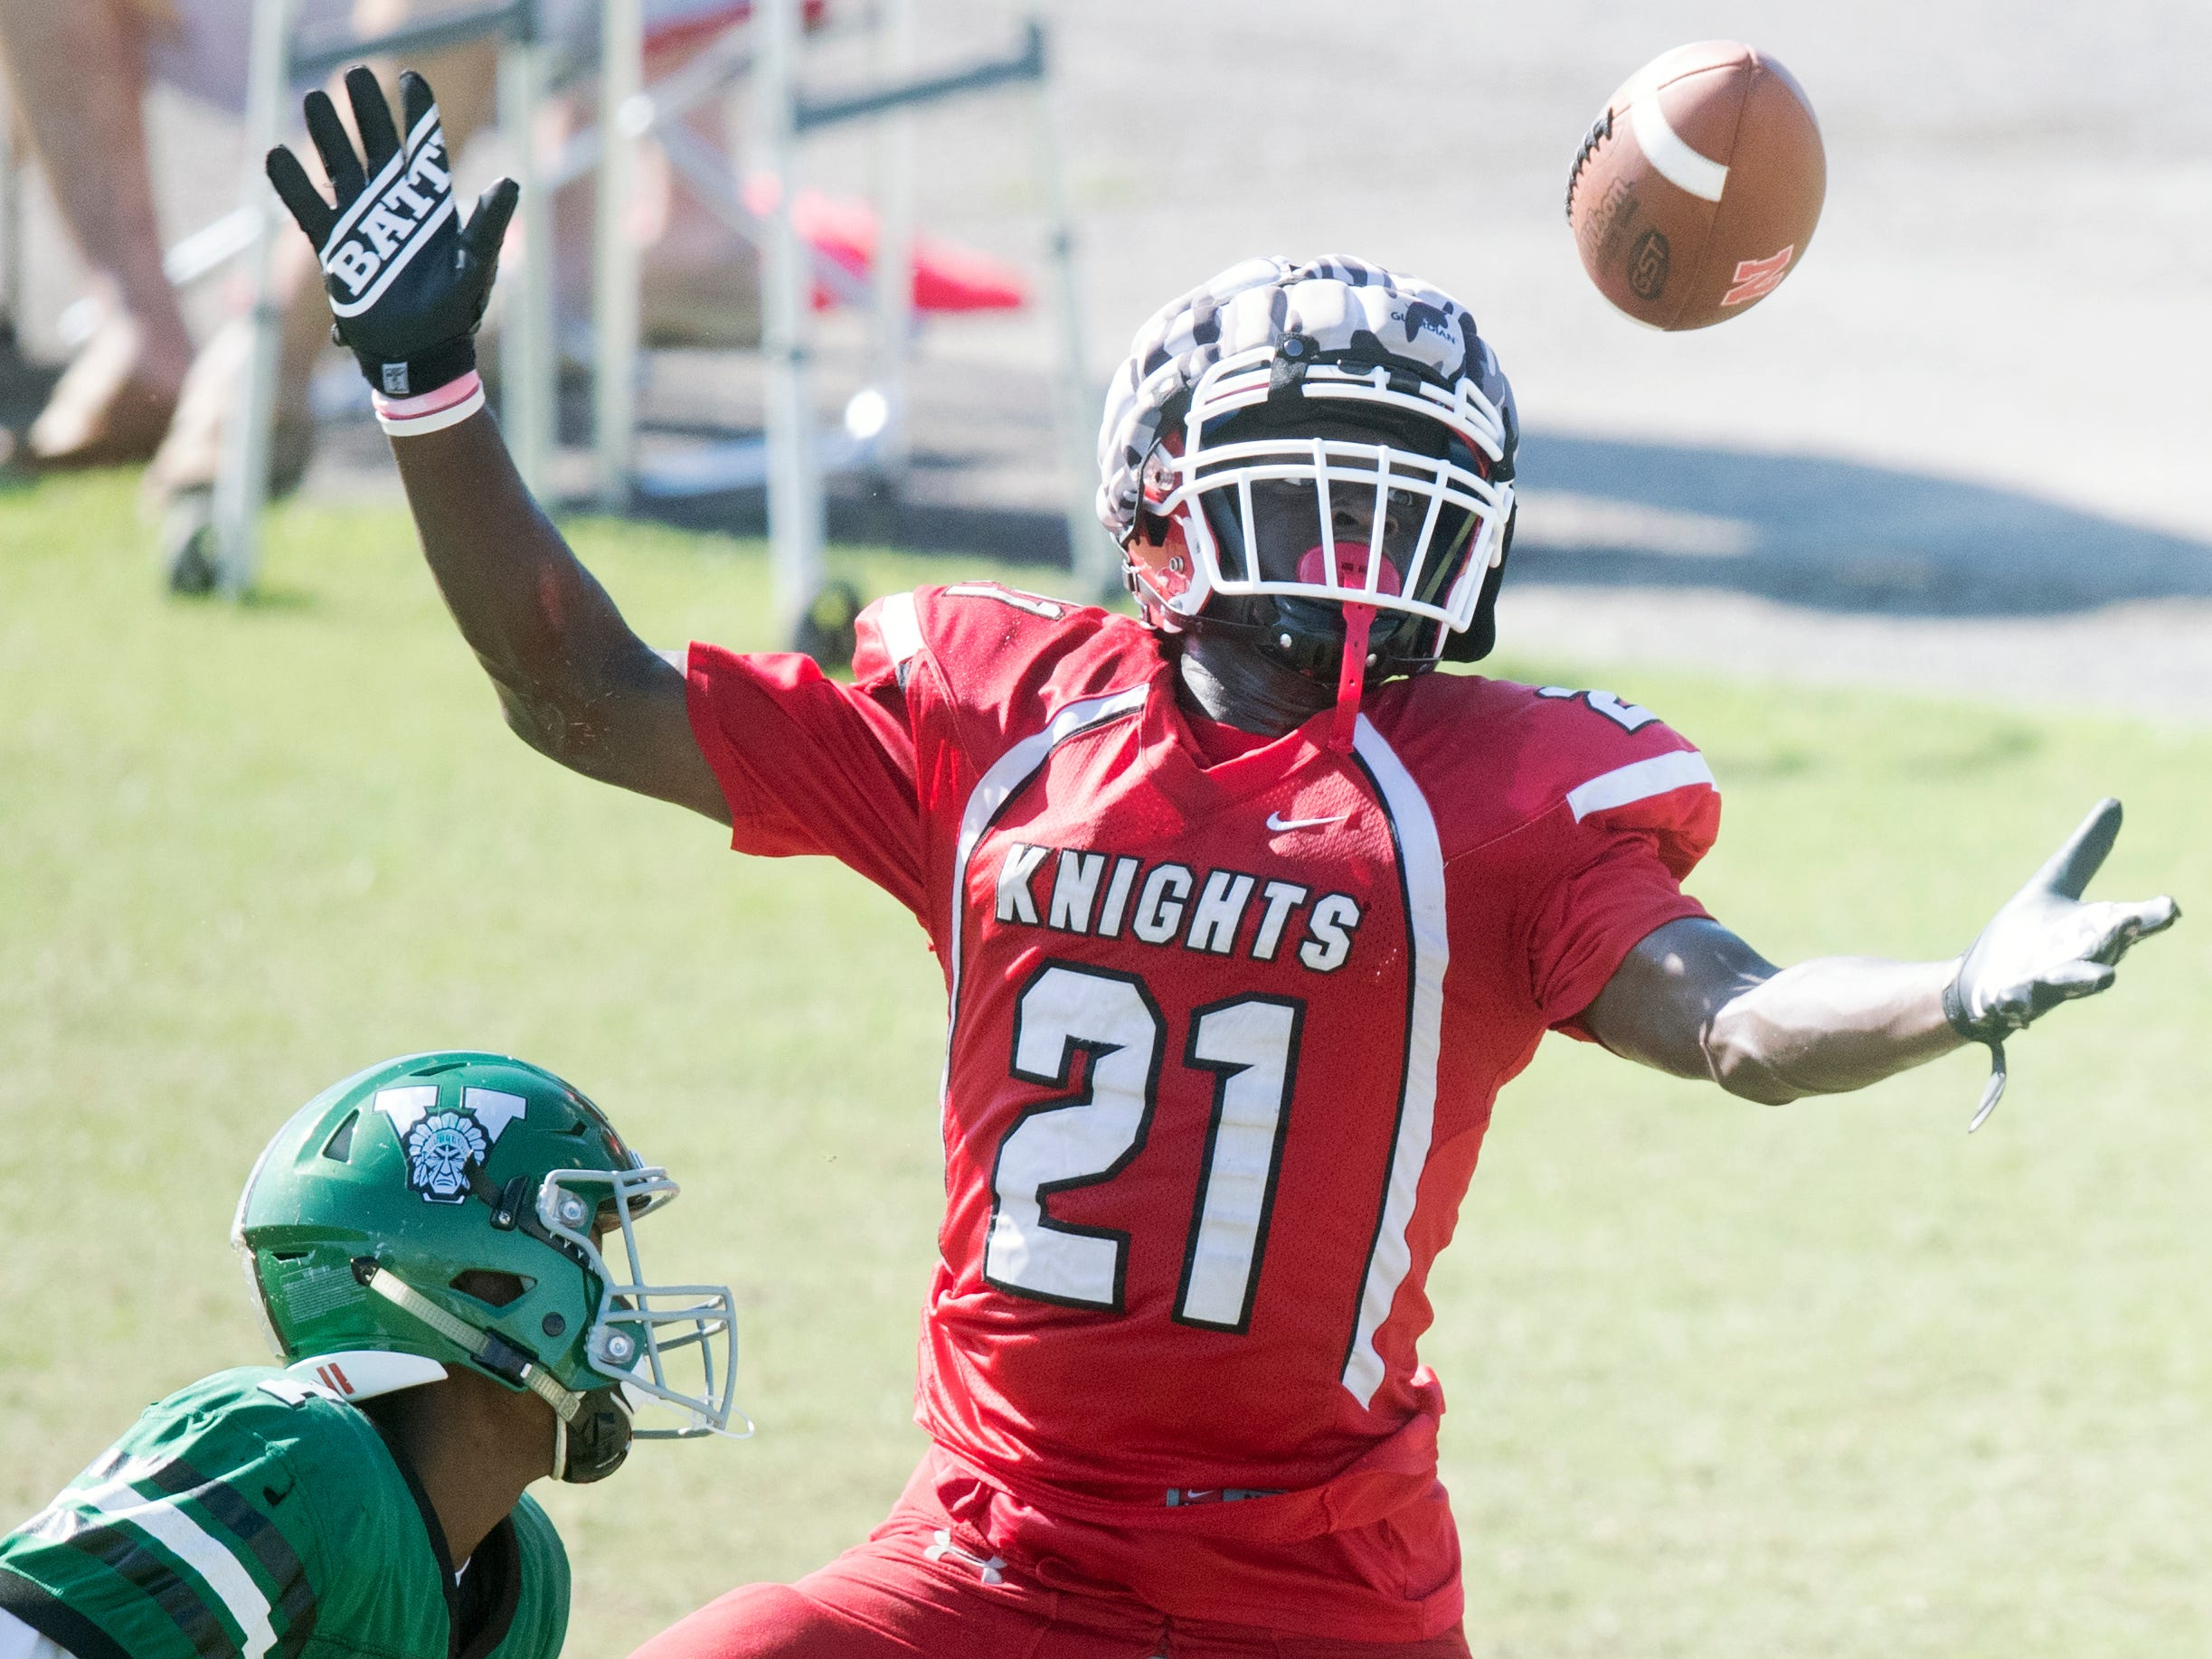 North Fort Myers High School's Daniel Pilgrim looks to catch a pass against Venice during a joint scrimmage on Saturday at North Fort Myers High School. Riverdale and Dunbar also played in the scrimmage.